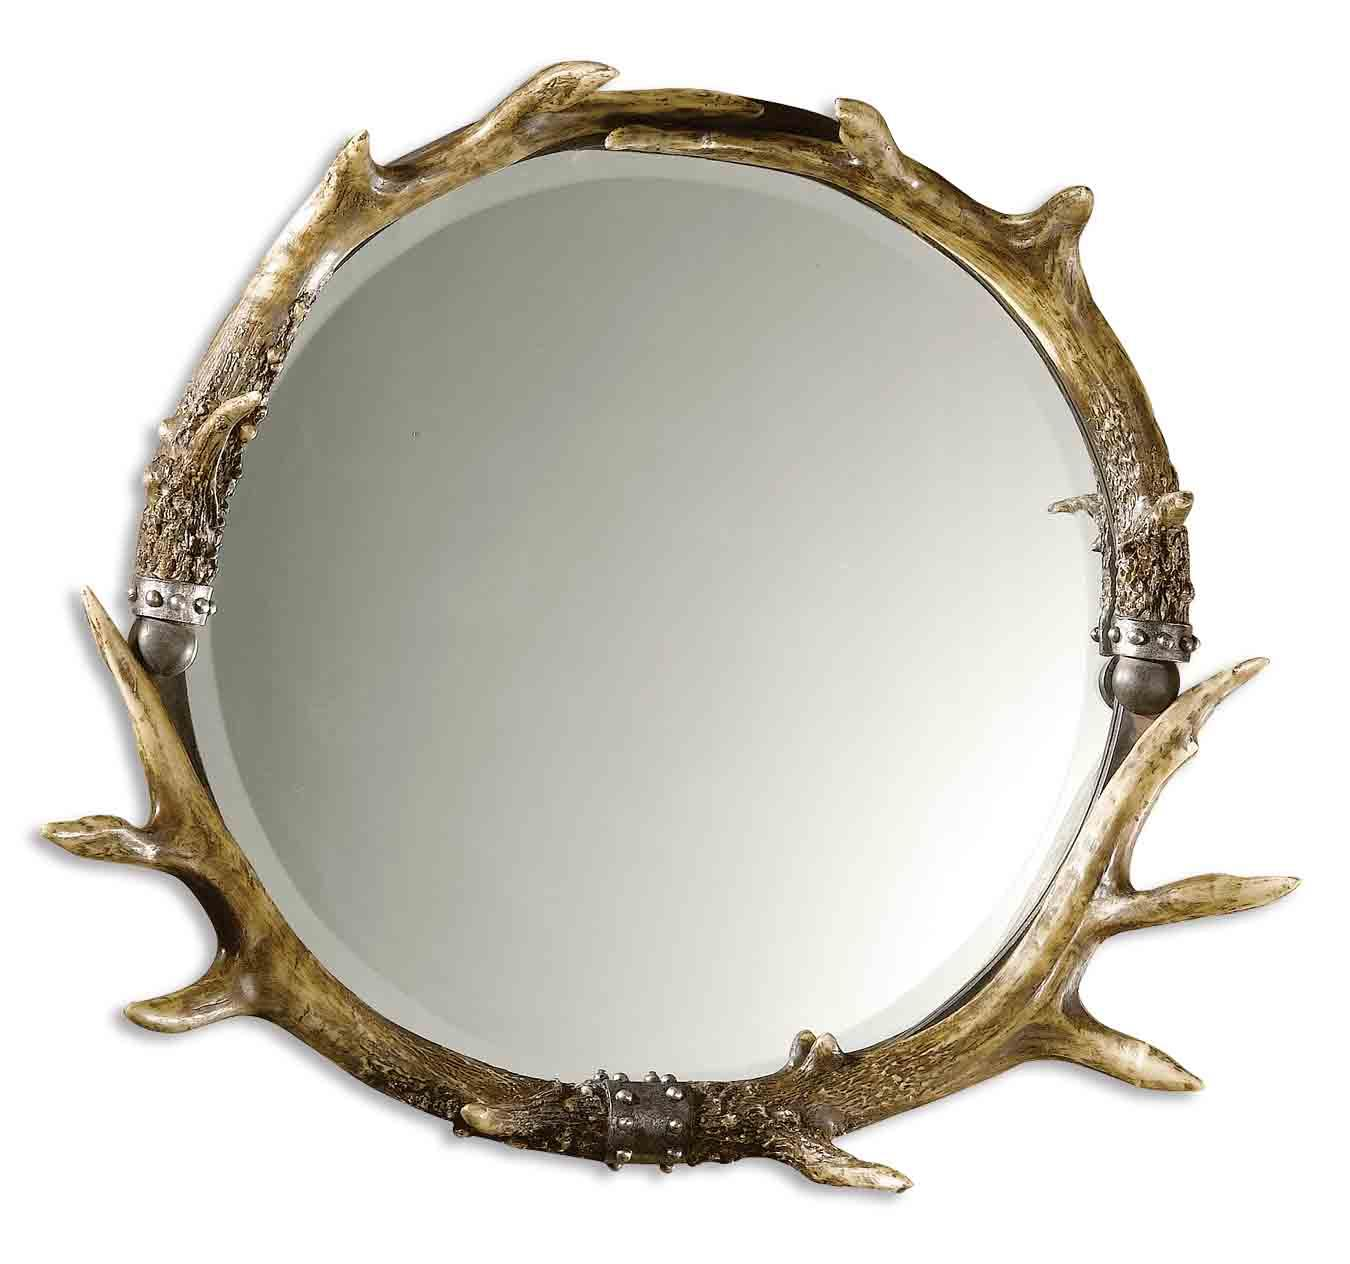 Mirrors - Round Stag Horn Mirror Round by Uttermost at Stuckey Furniture